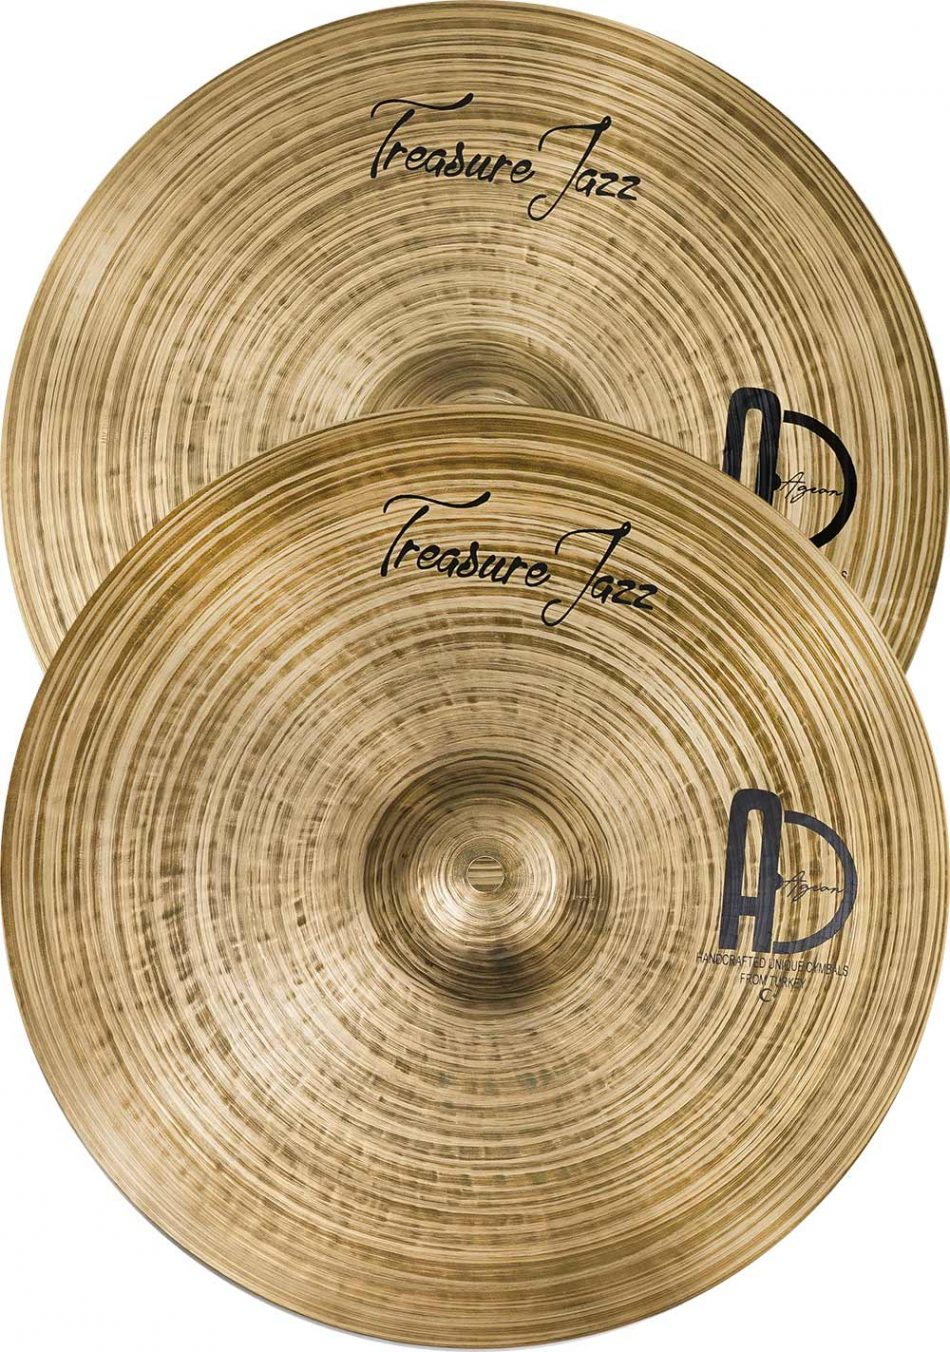 Hi-Hat Cymbals For Sale